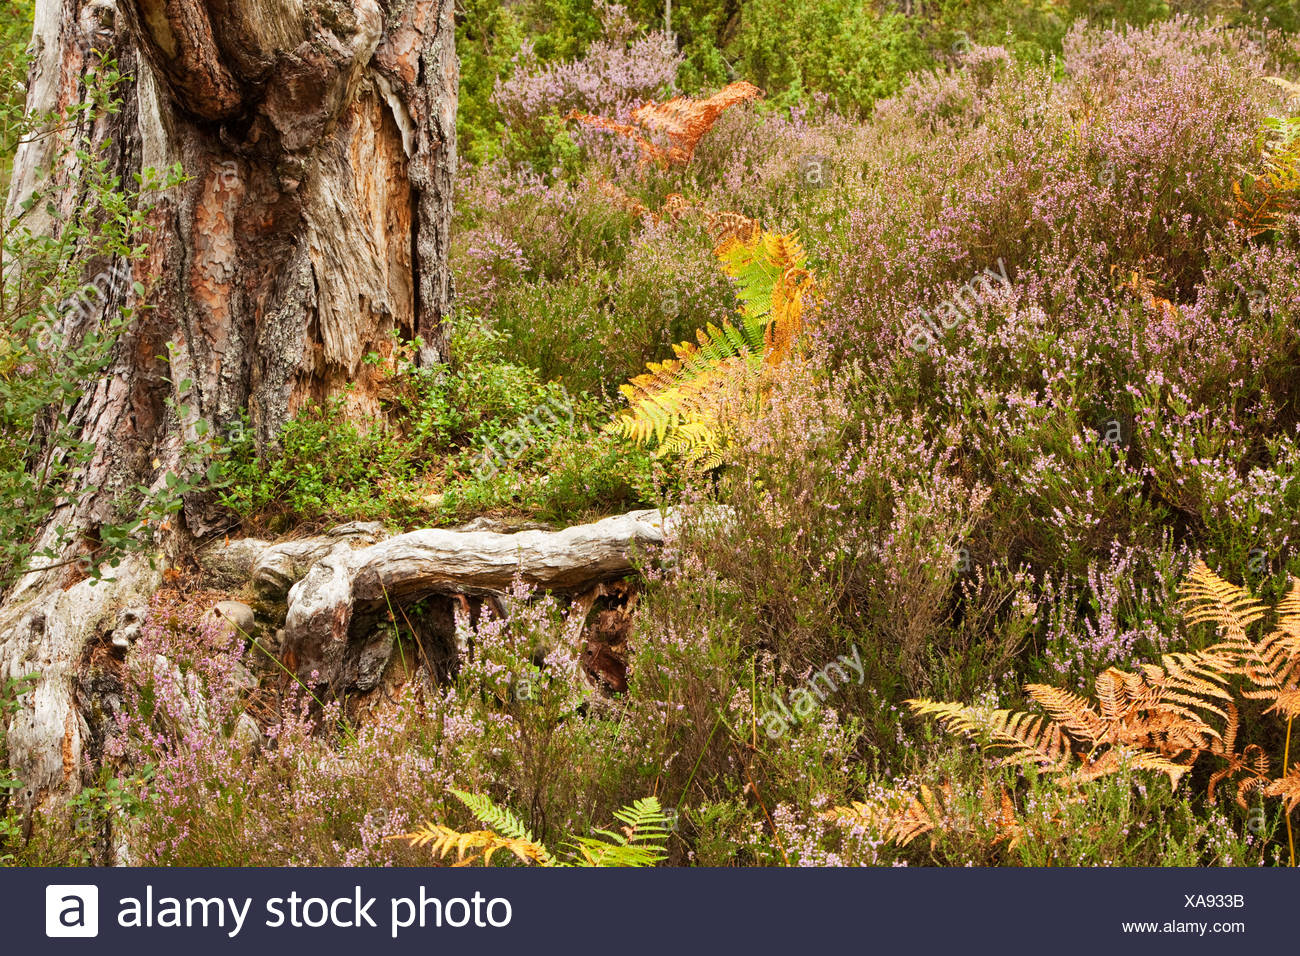 Close up heather and bracken at base of tree on forest floor in caledonian pine forest at Loch an Eilein, Cairngorms National Pa - Stock Image